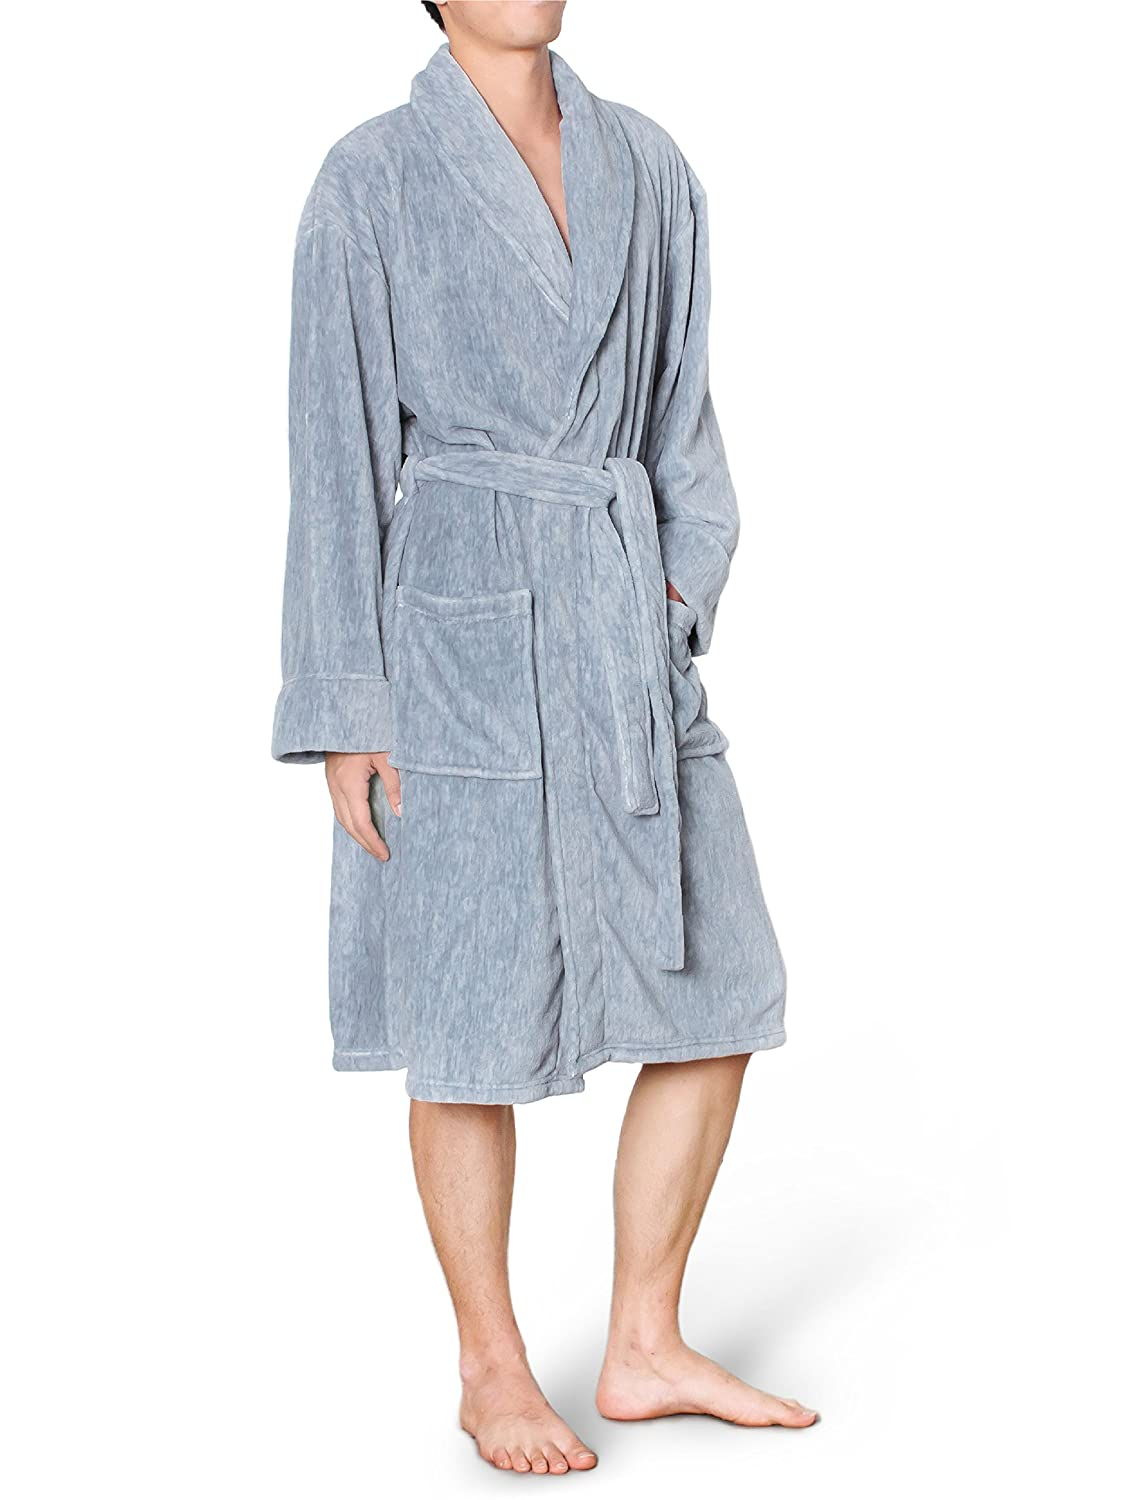 Mens Plush Fleece Robe with Shawl Collar | Soft, Warm, Lightweight Spa Bath Robe PAVILIA